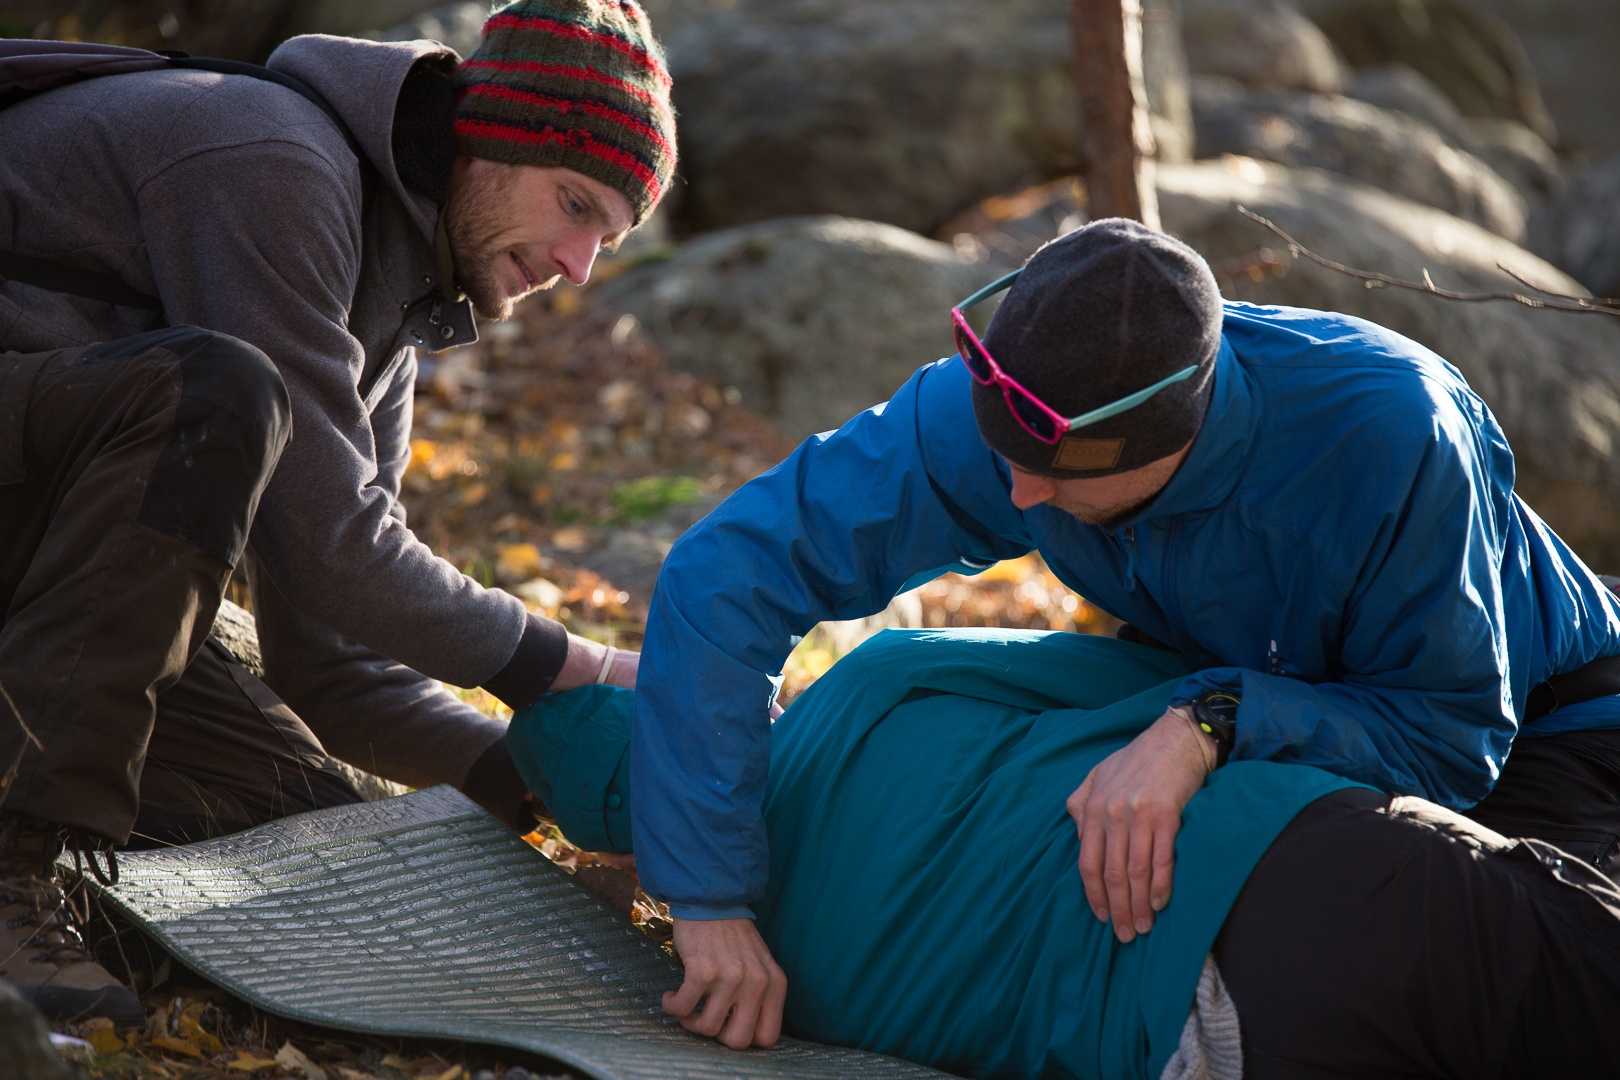 Two wilderness medicine students practice rolling a patient onto a foam pad